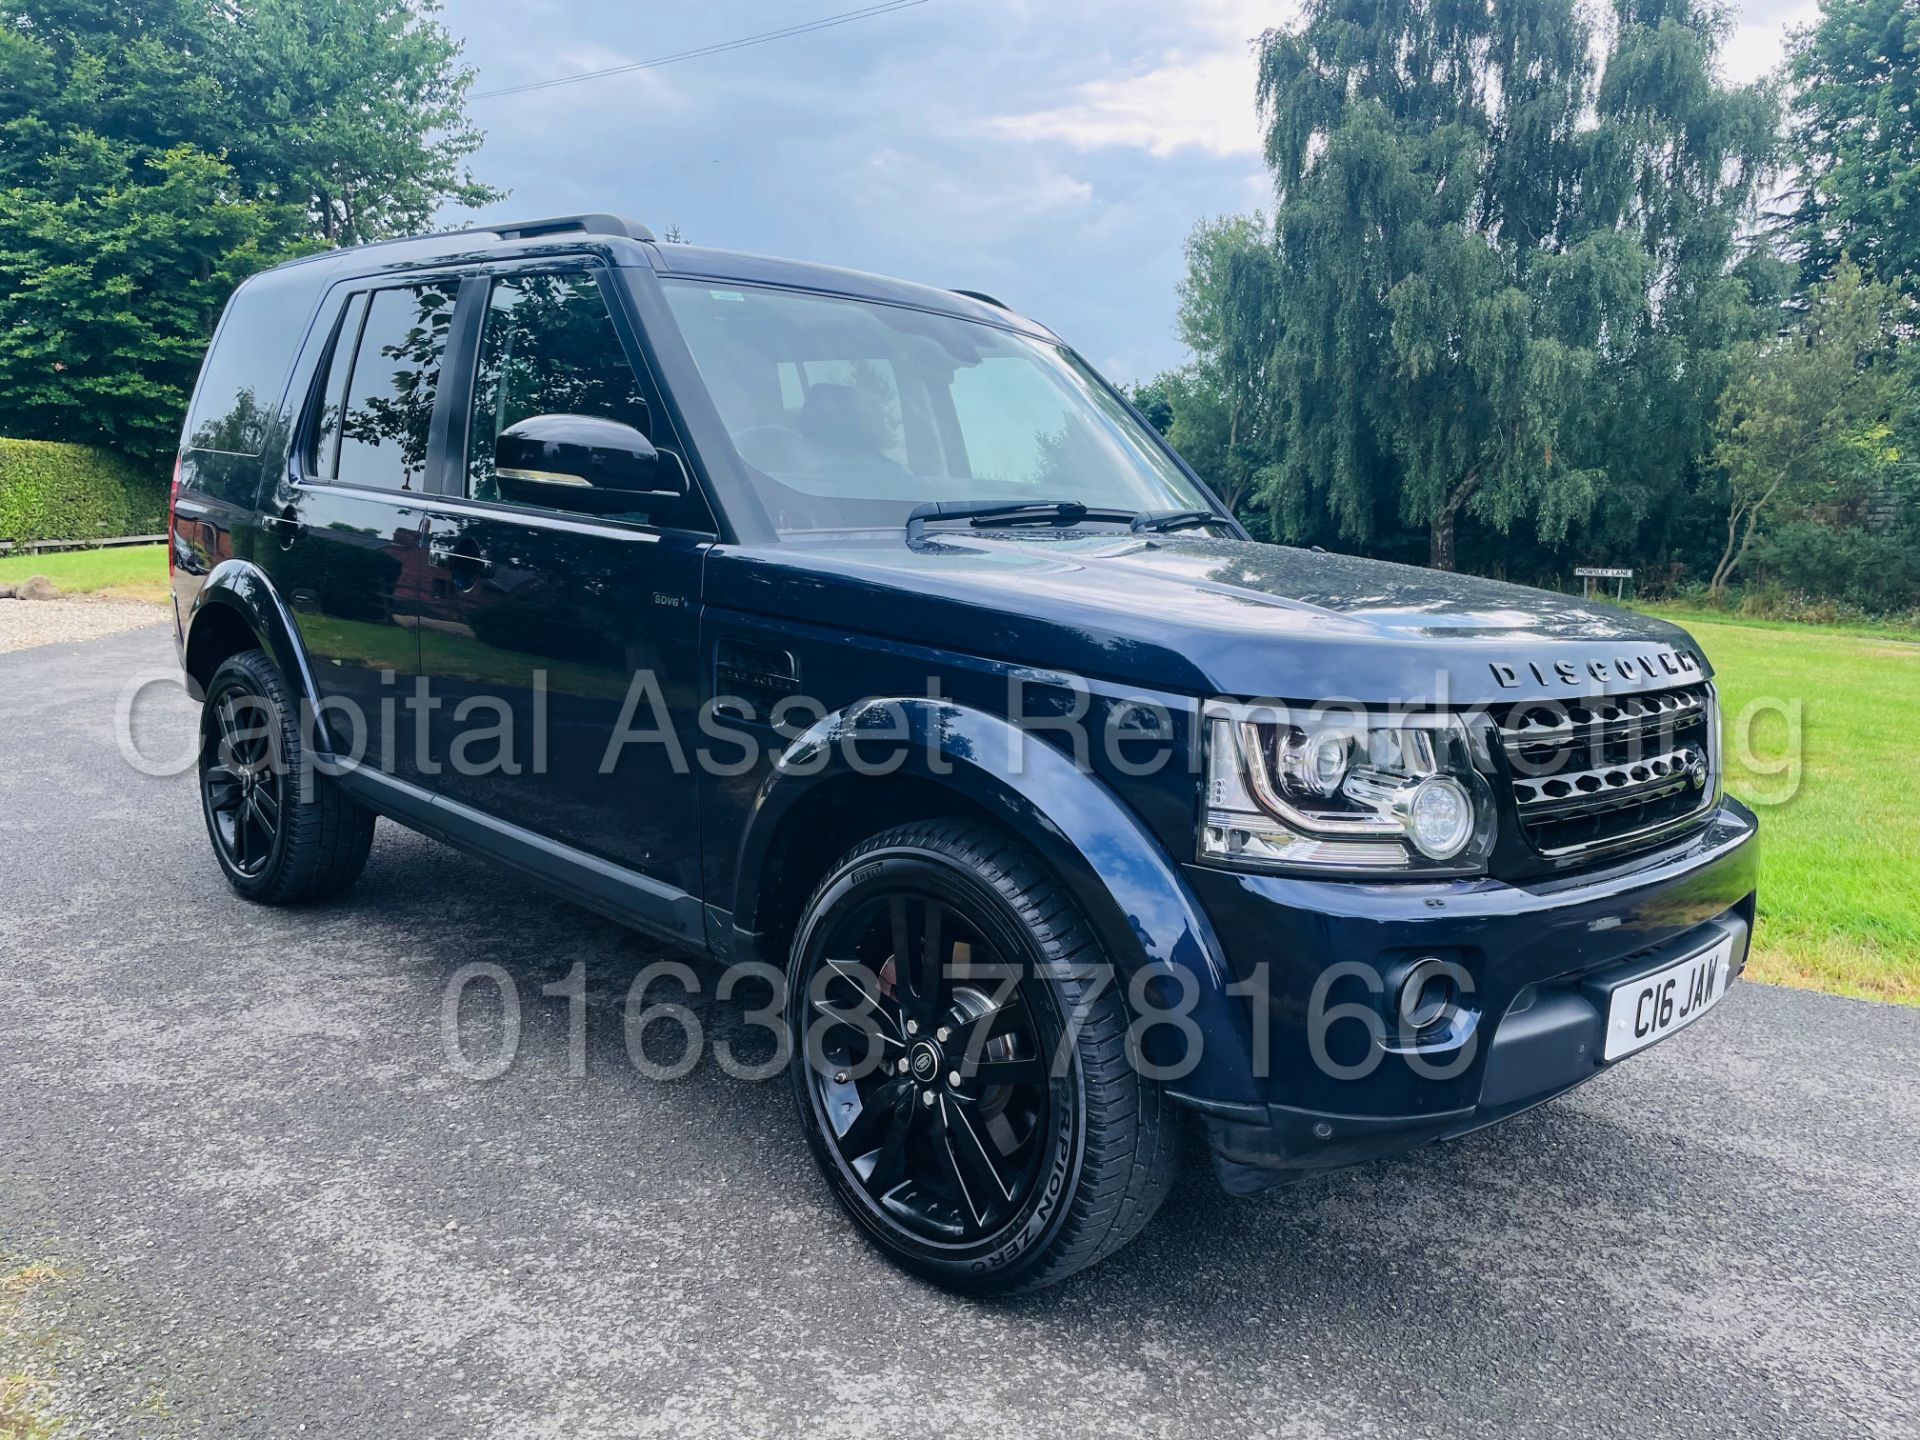 LAND ROVER DISCOVERY 4 *HSE* 7 SEATER SUV (2014 - NEW MODEL) '3.0 SDV6 - 255 BHP - 8 SPEED AUTO' - Image 13 of 61